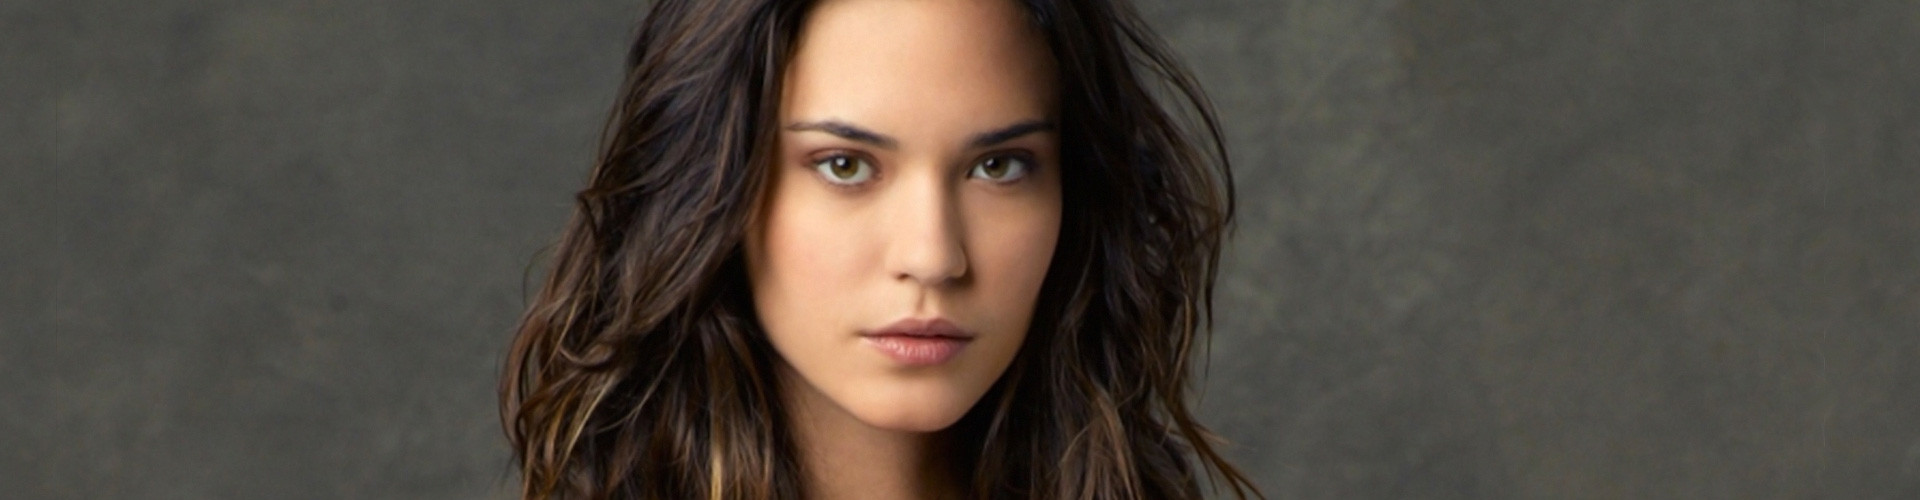 odette-annable-header.jpg